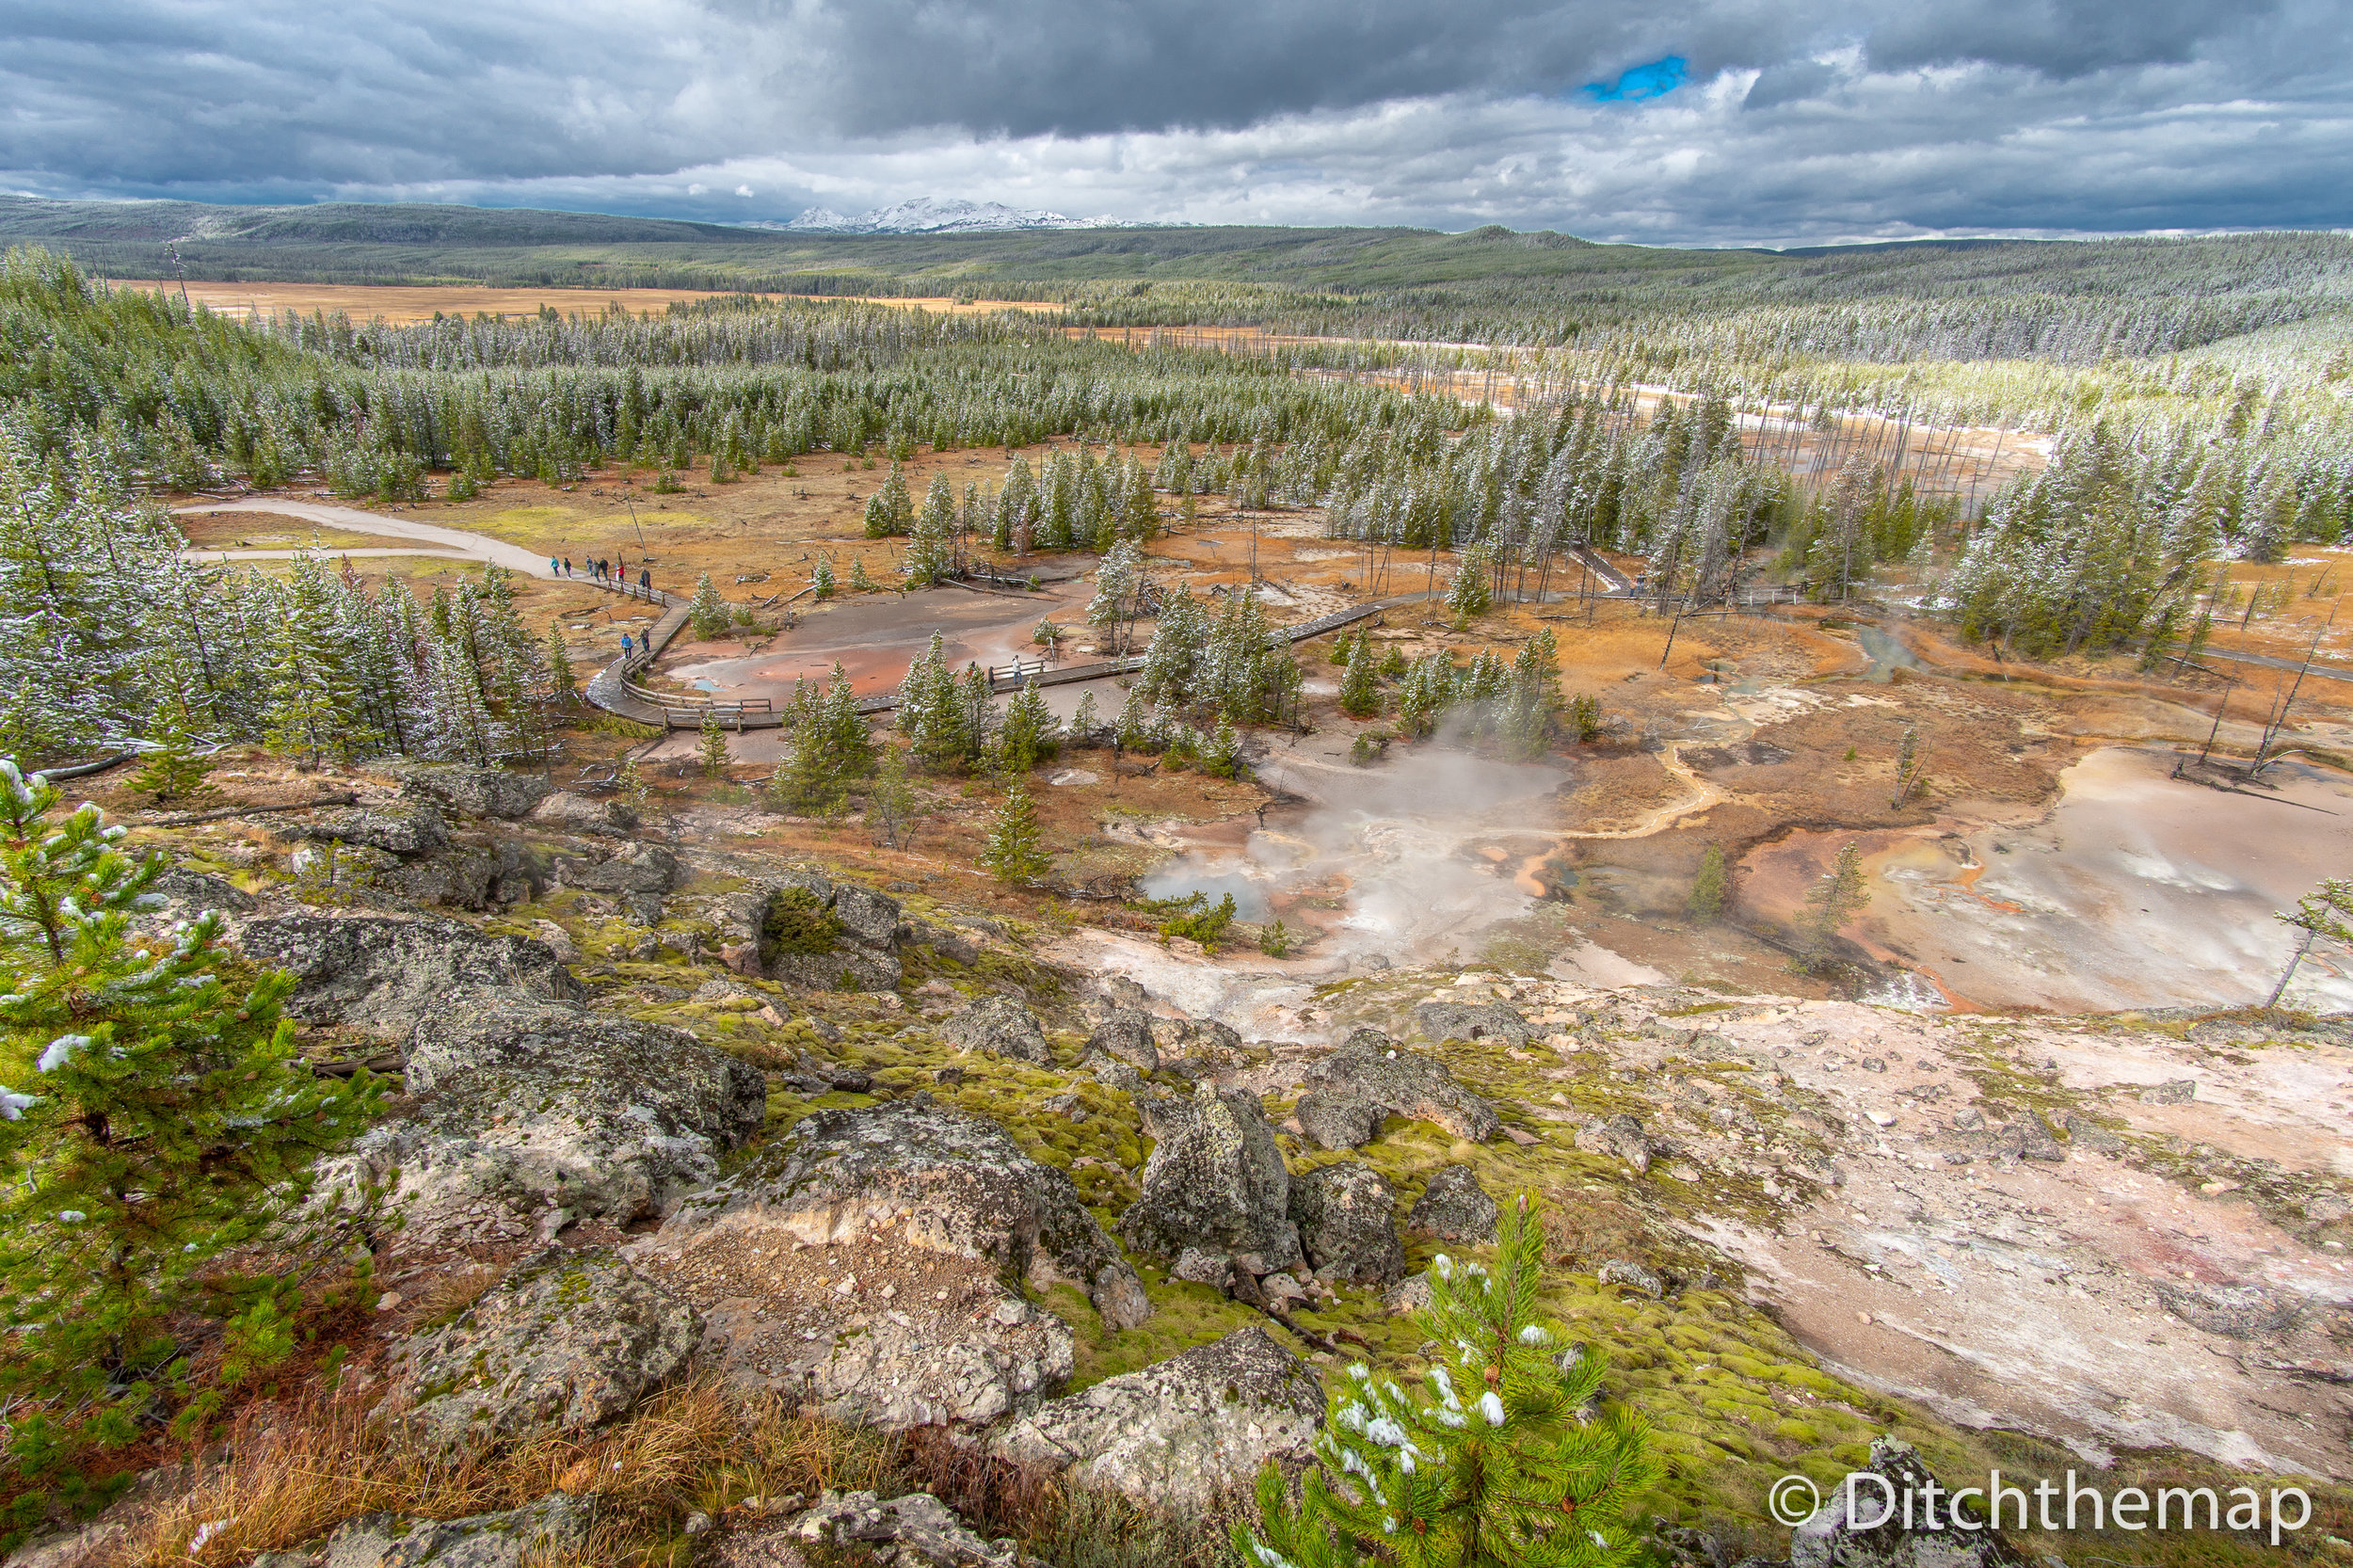 Yellowstone landscape of geiser pools and mud pots